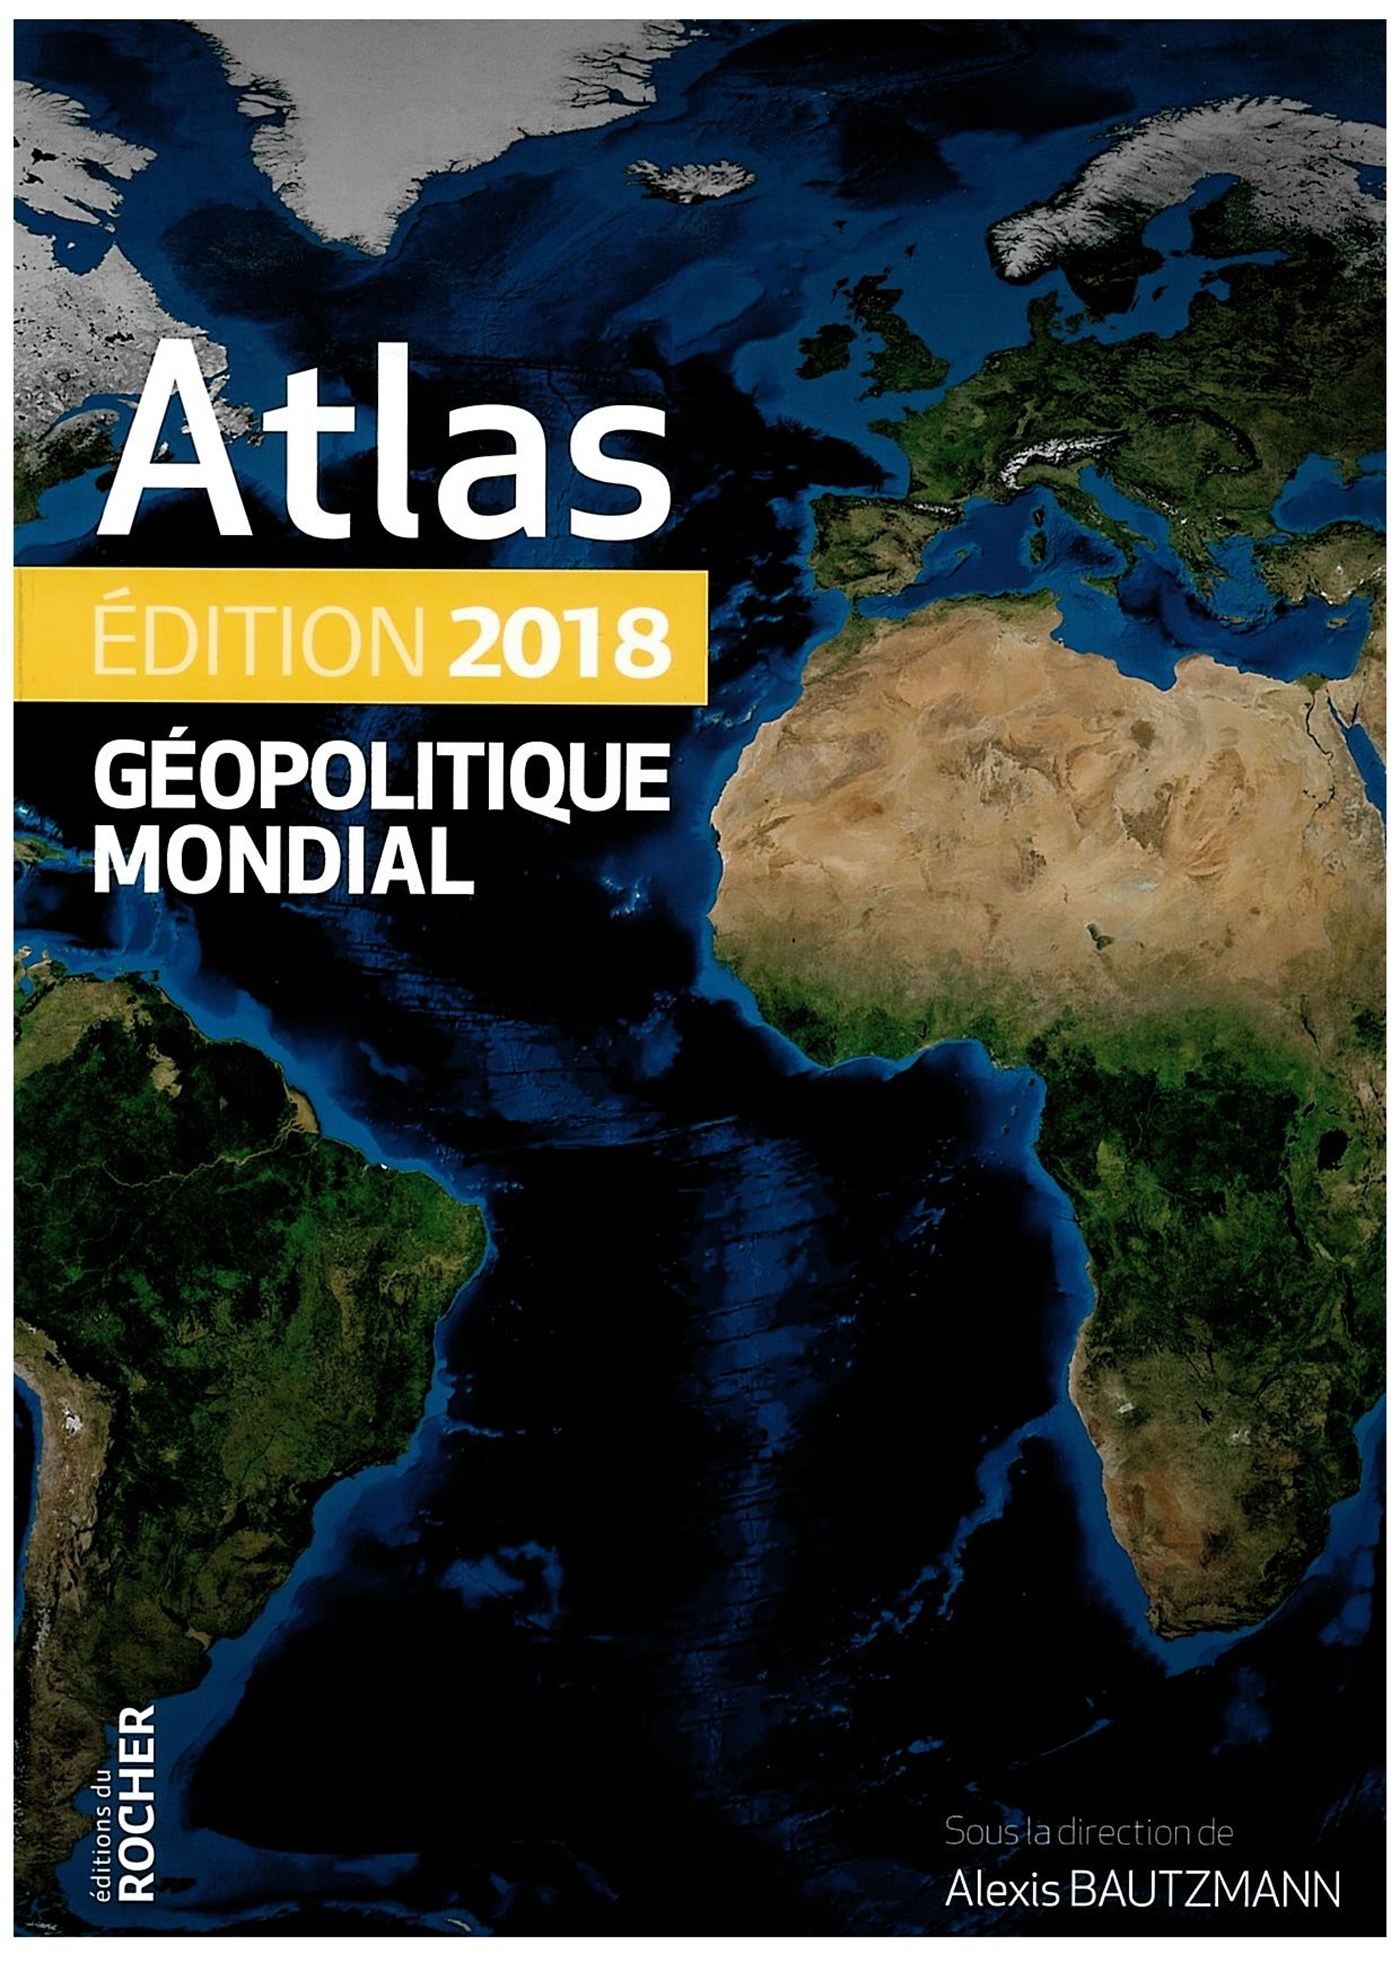 ATLAS GEOPOLITIQUE MONDIAL 2018